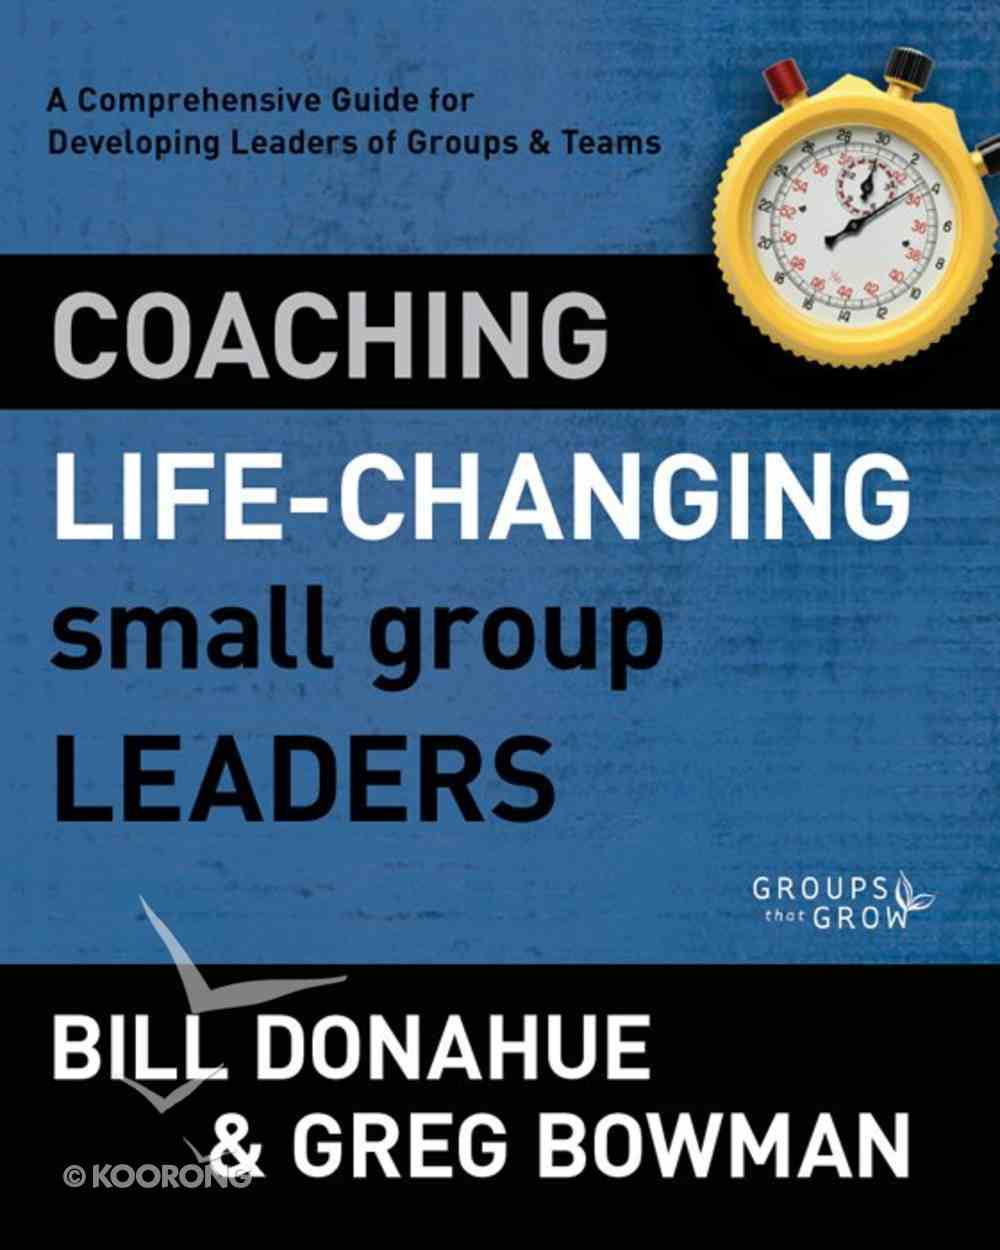 Coaching Life-Changing Small Group Leaders (Groups That Grow Series) eBook